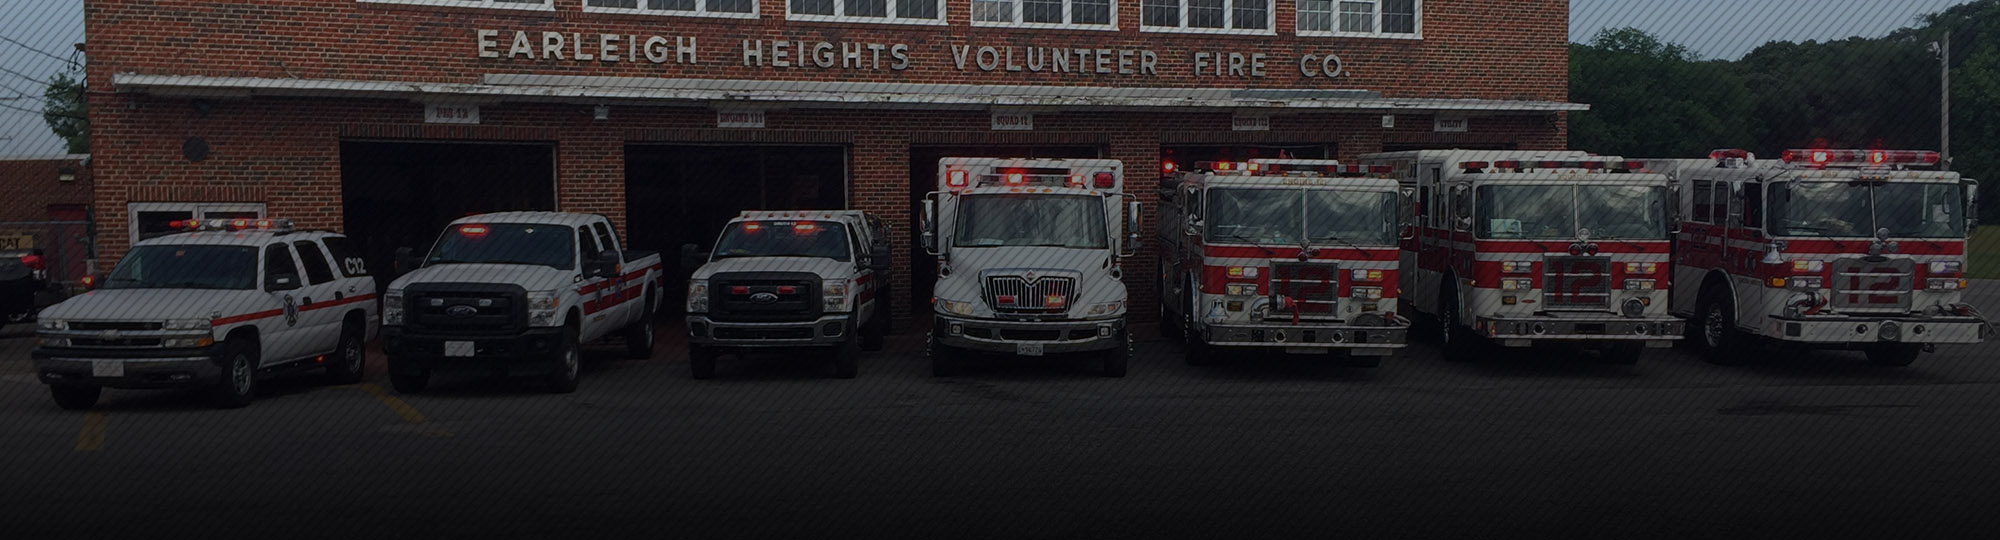 Earleigh Heights VFC